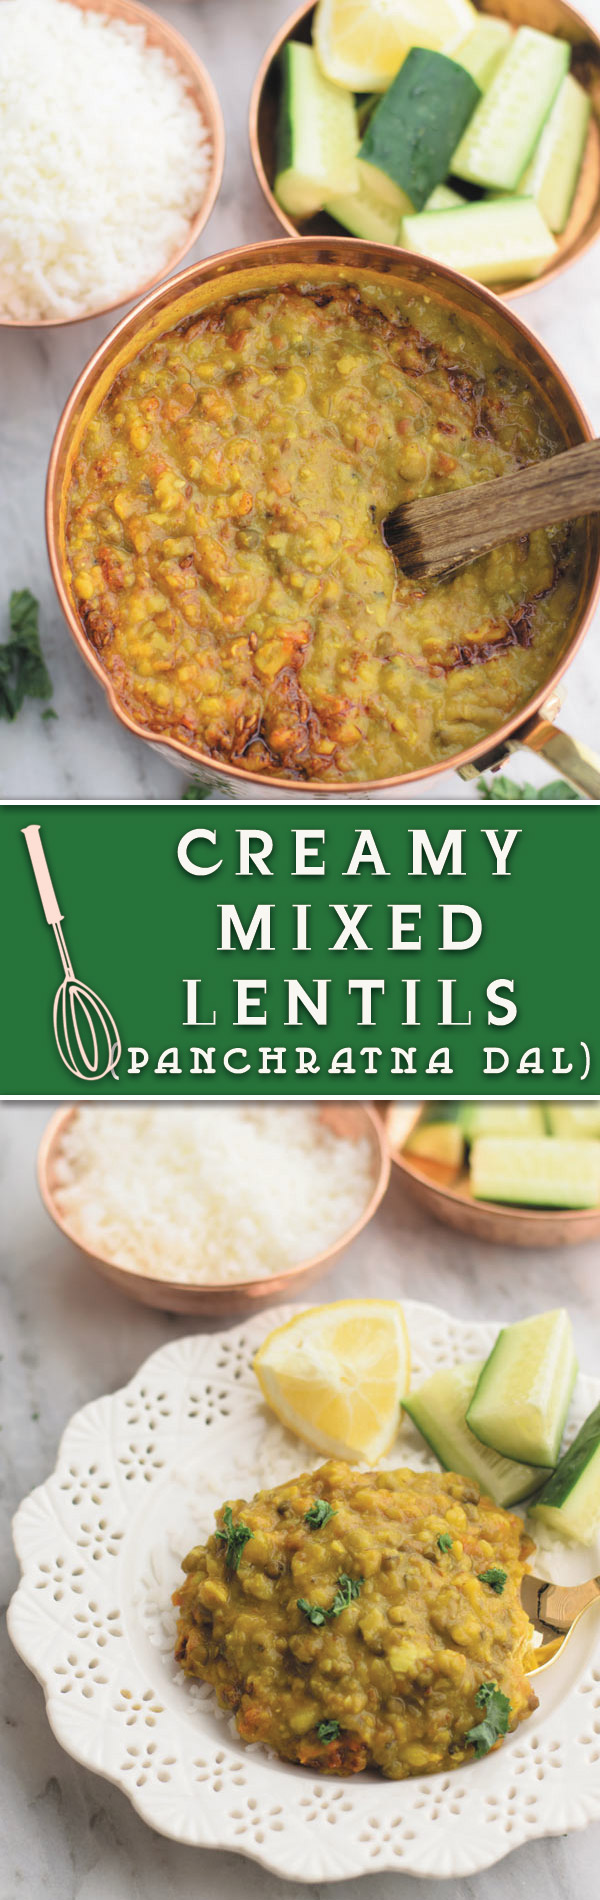 Creamy mixed lentils - Creamy lentils made using 5 kinds of lentils with tomatoes & onions. So creamy, addicting and pure comfort food!